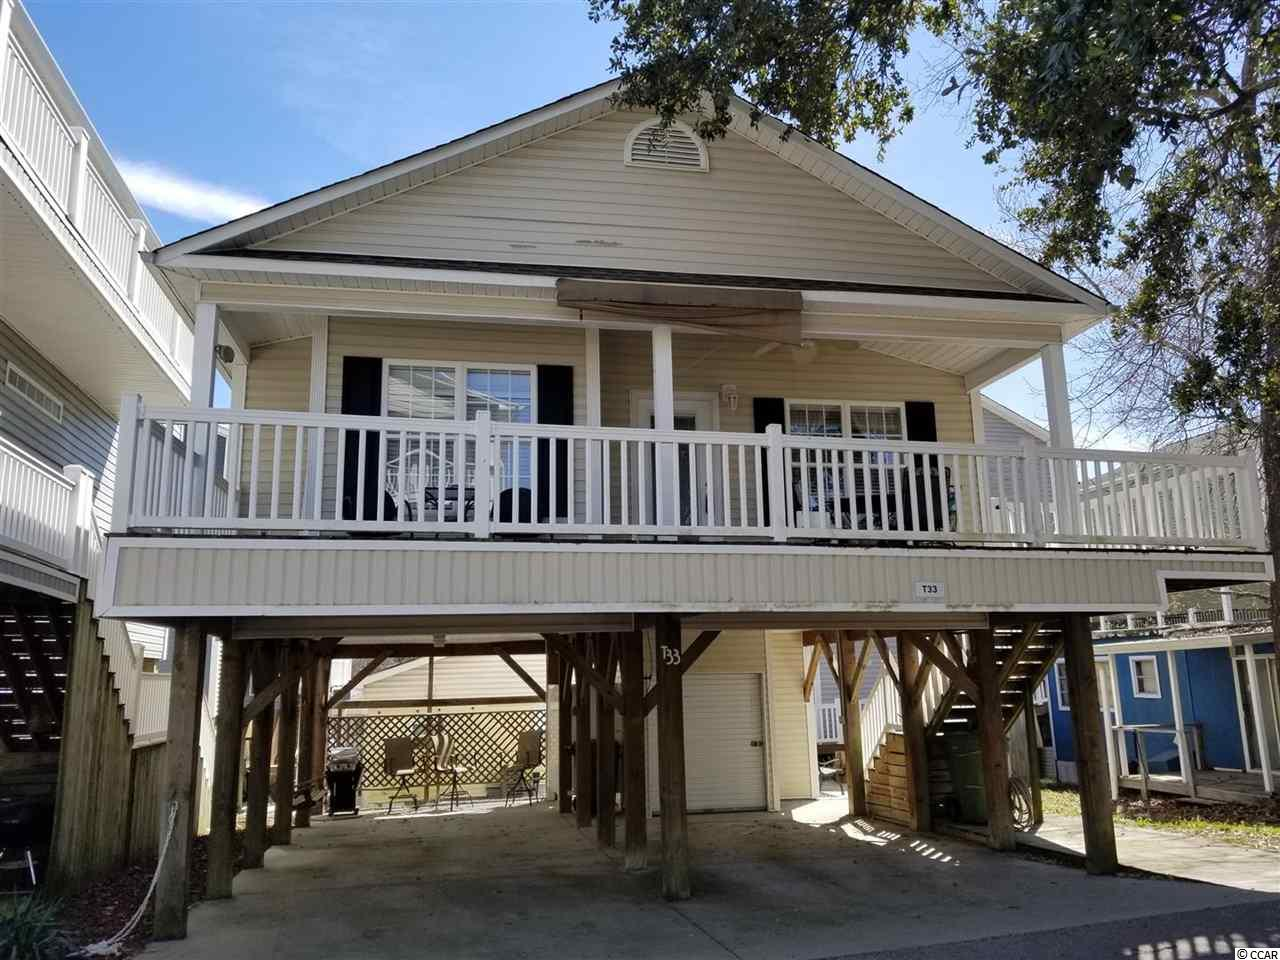 6001-T33 S Kings Hwy., Myrtle Beach, South Carolina